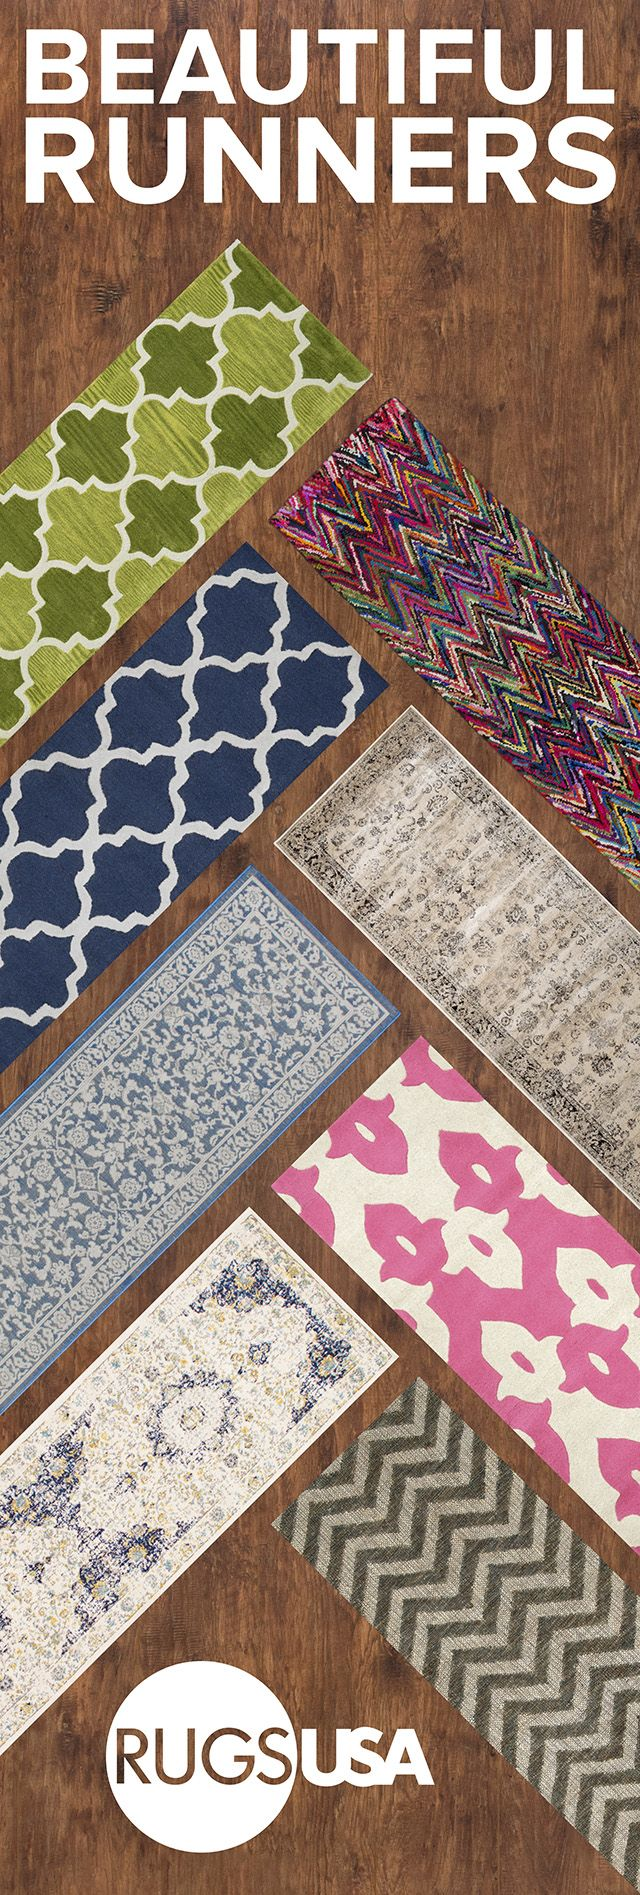 手机壳定制china handbags Rugs USA runners are limitless and available in a variety of styles weaves and material Visit Rugs USA to fulfill your runner needs